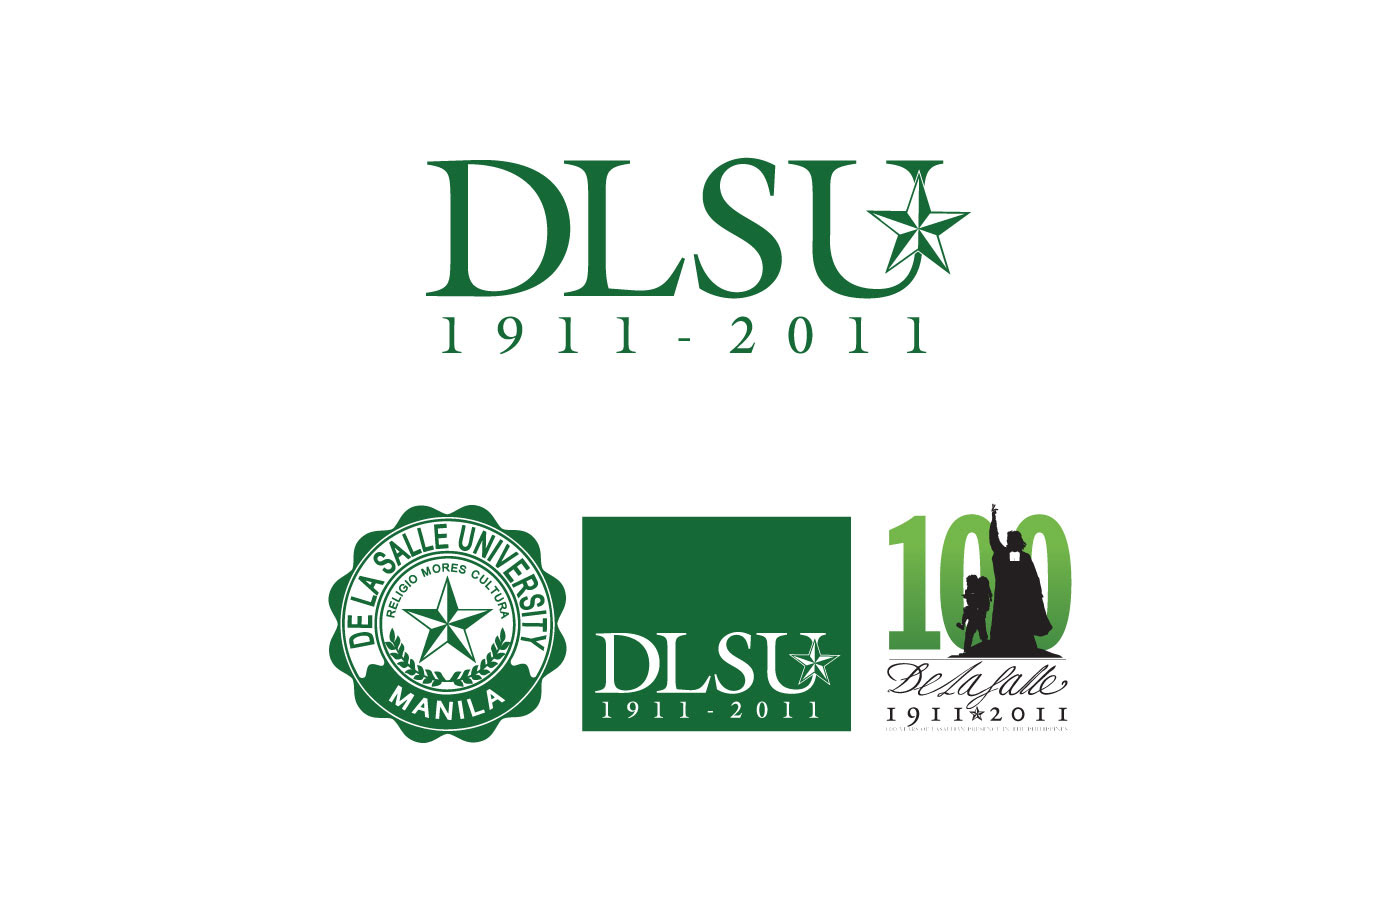 Also Shown Is The Centennial Logo I Designed With Our Creative Director As A Stand Alone And Its Application DLSU La Salle District